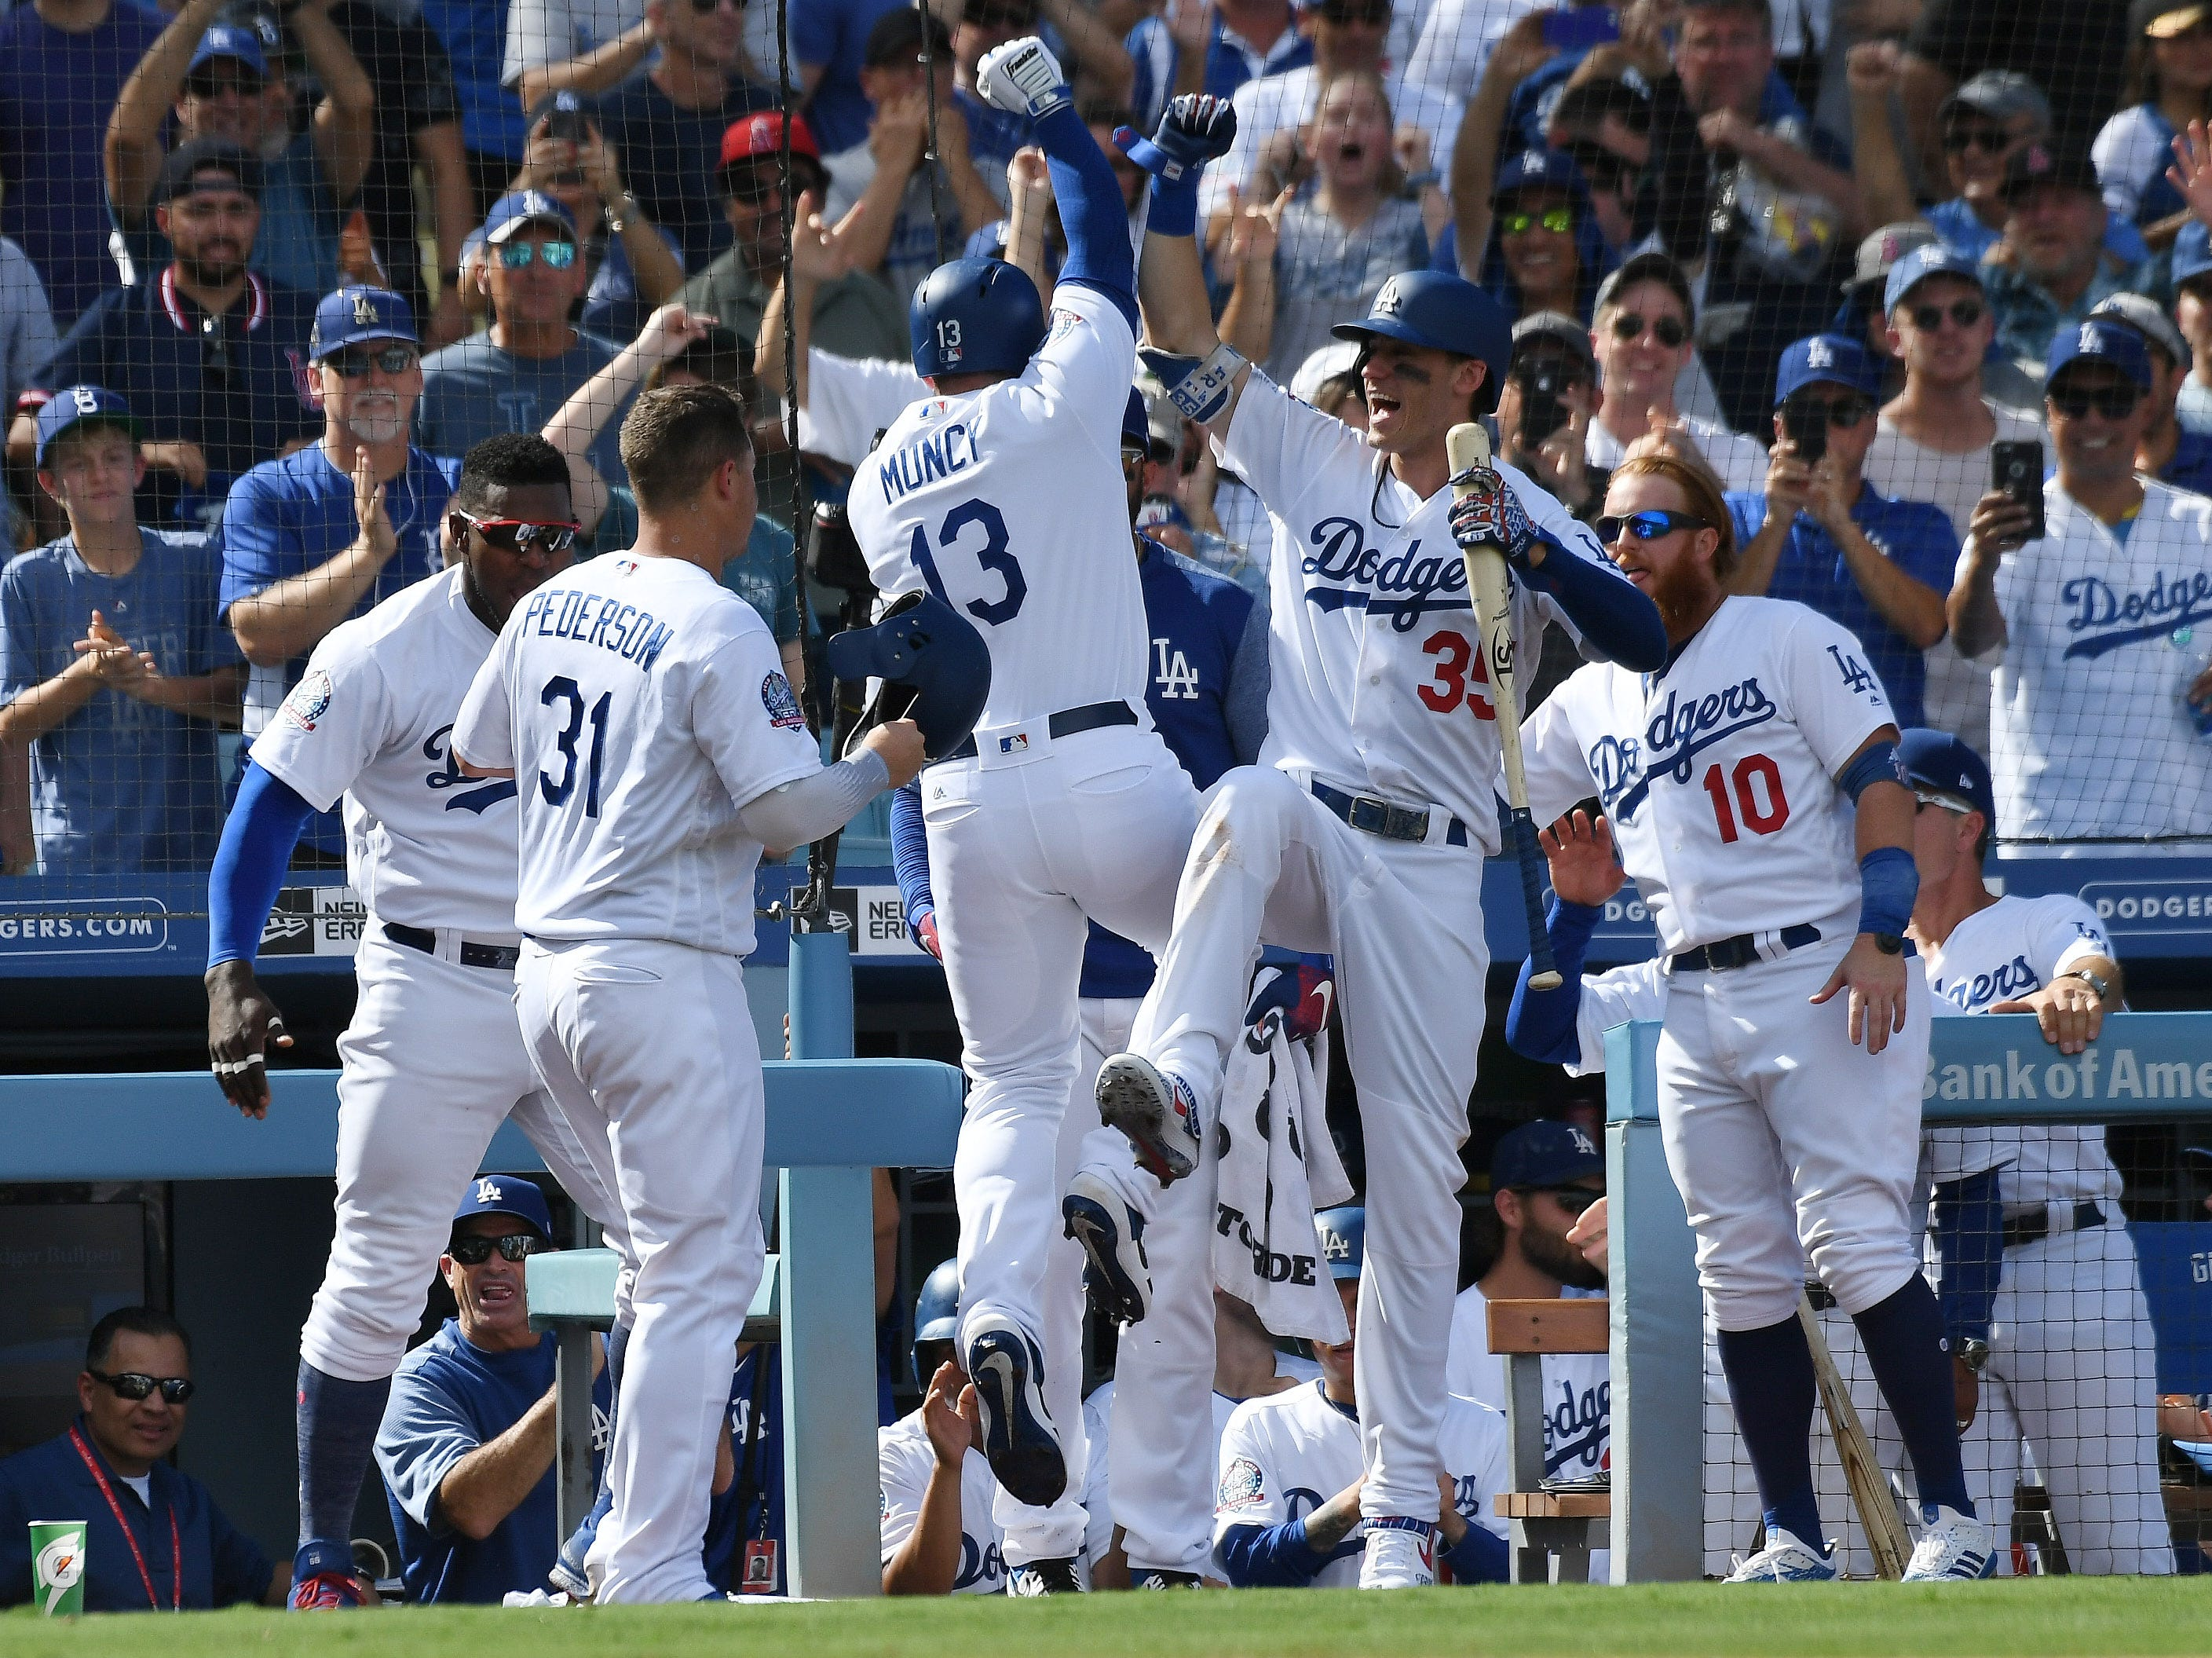 Dodgers players celebrate Max Muncy's two-run homer in the fifth inning.